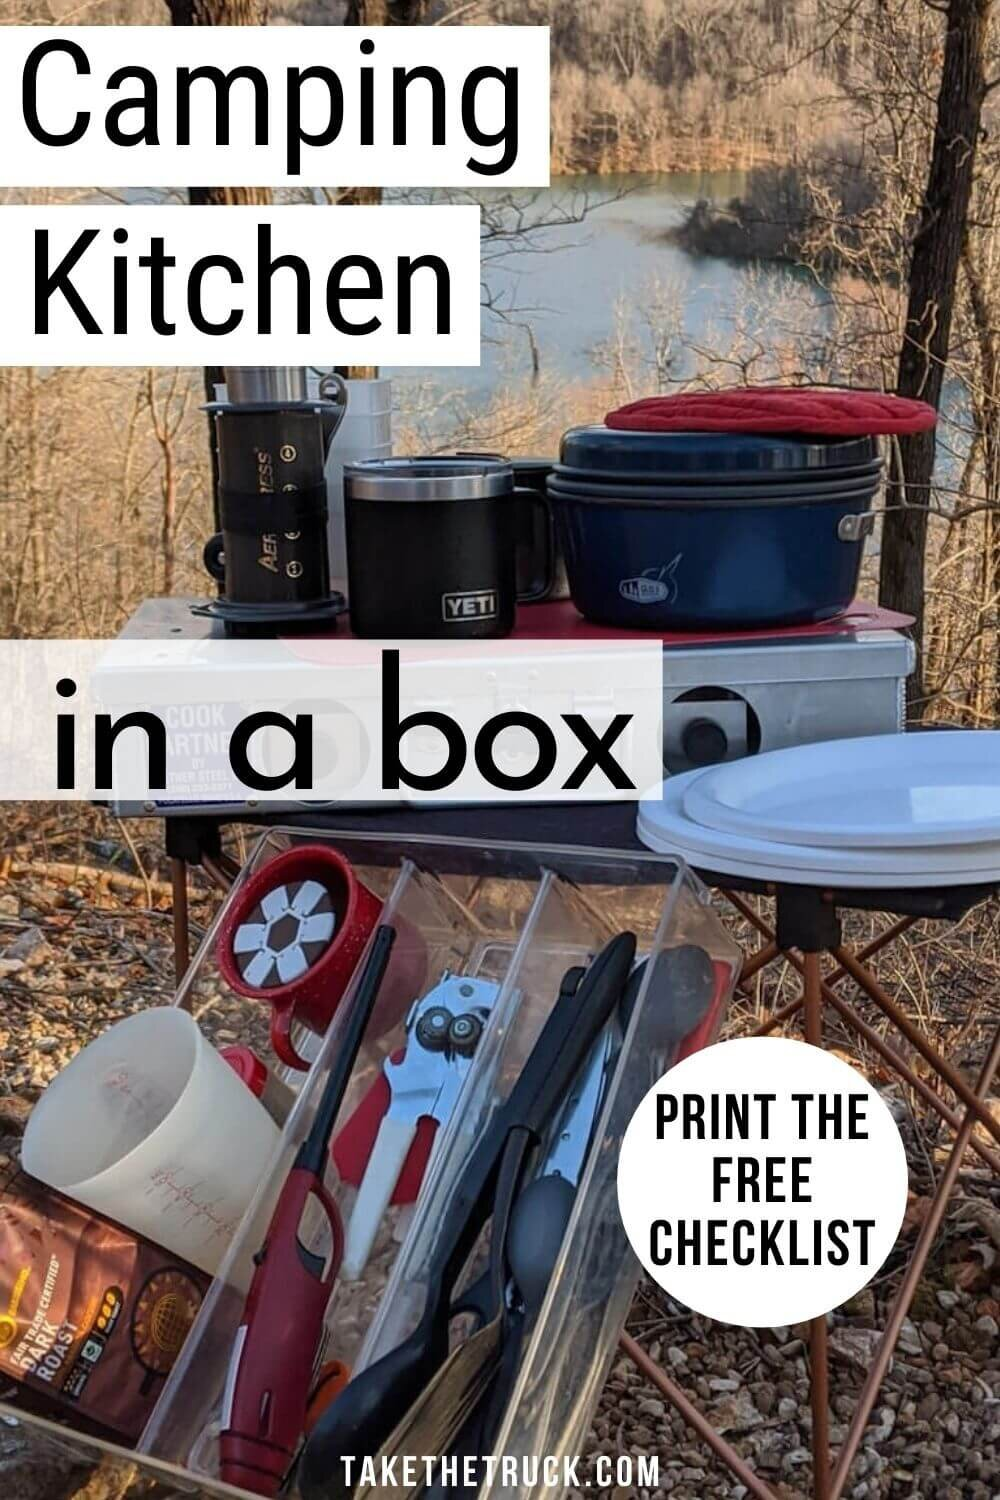 How to set up a camping kitchen in a box.